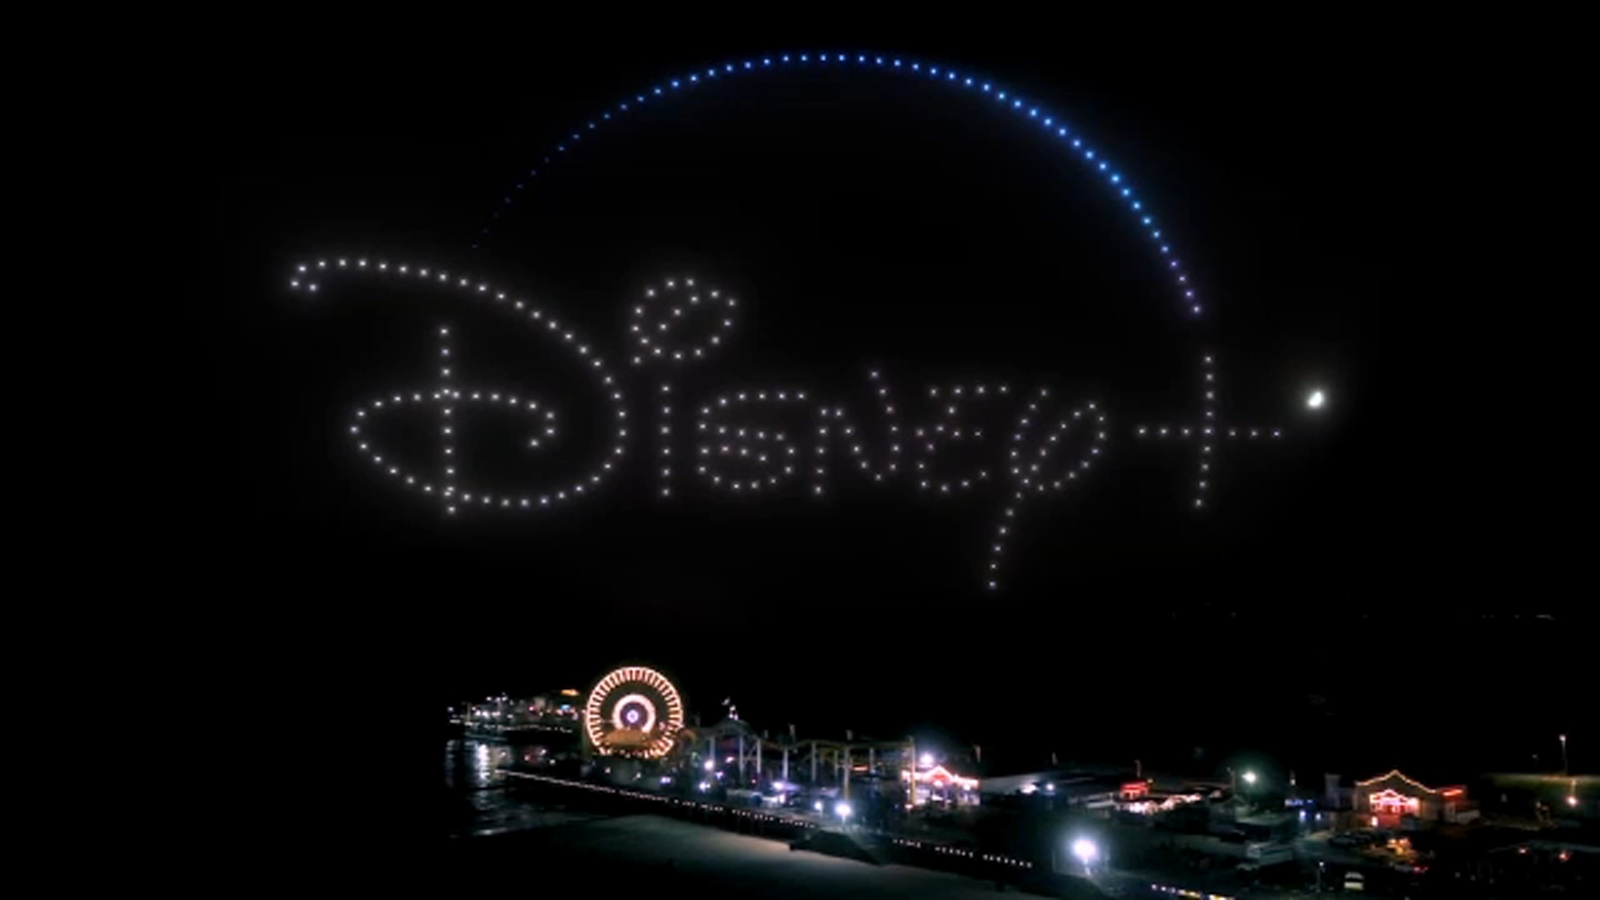 Drones showcase iconic characters, imagery from Disney Bundle in honor of National Streaming Day